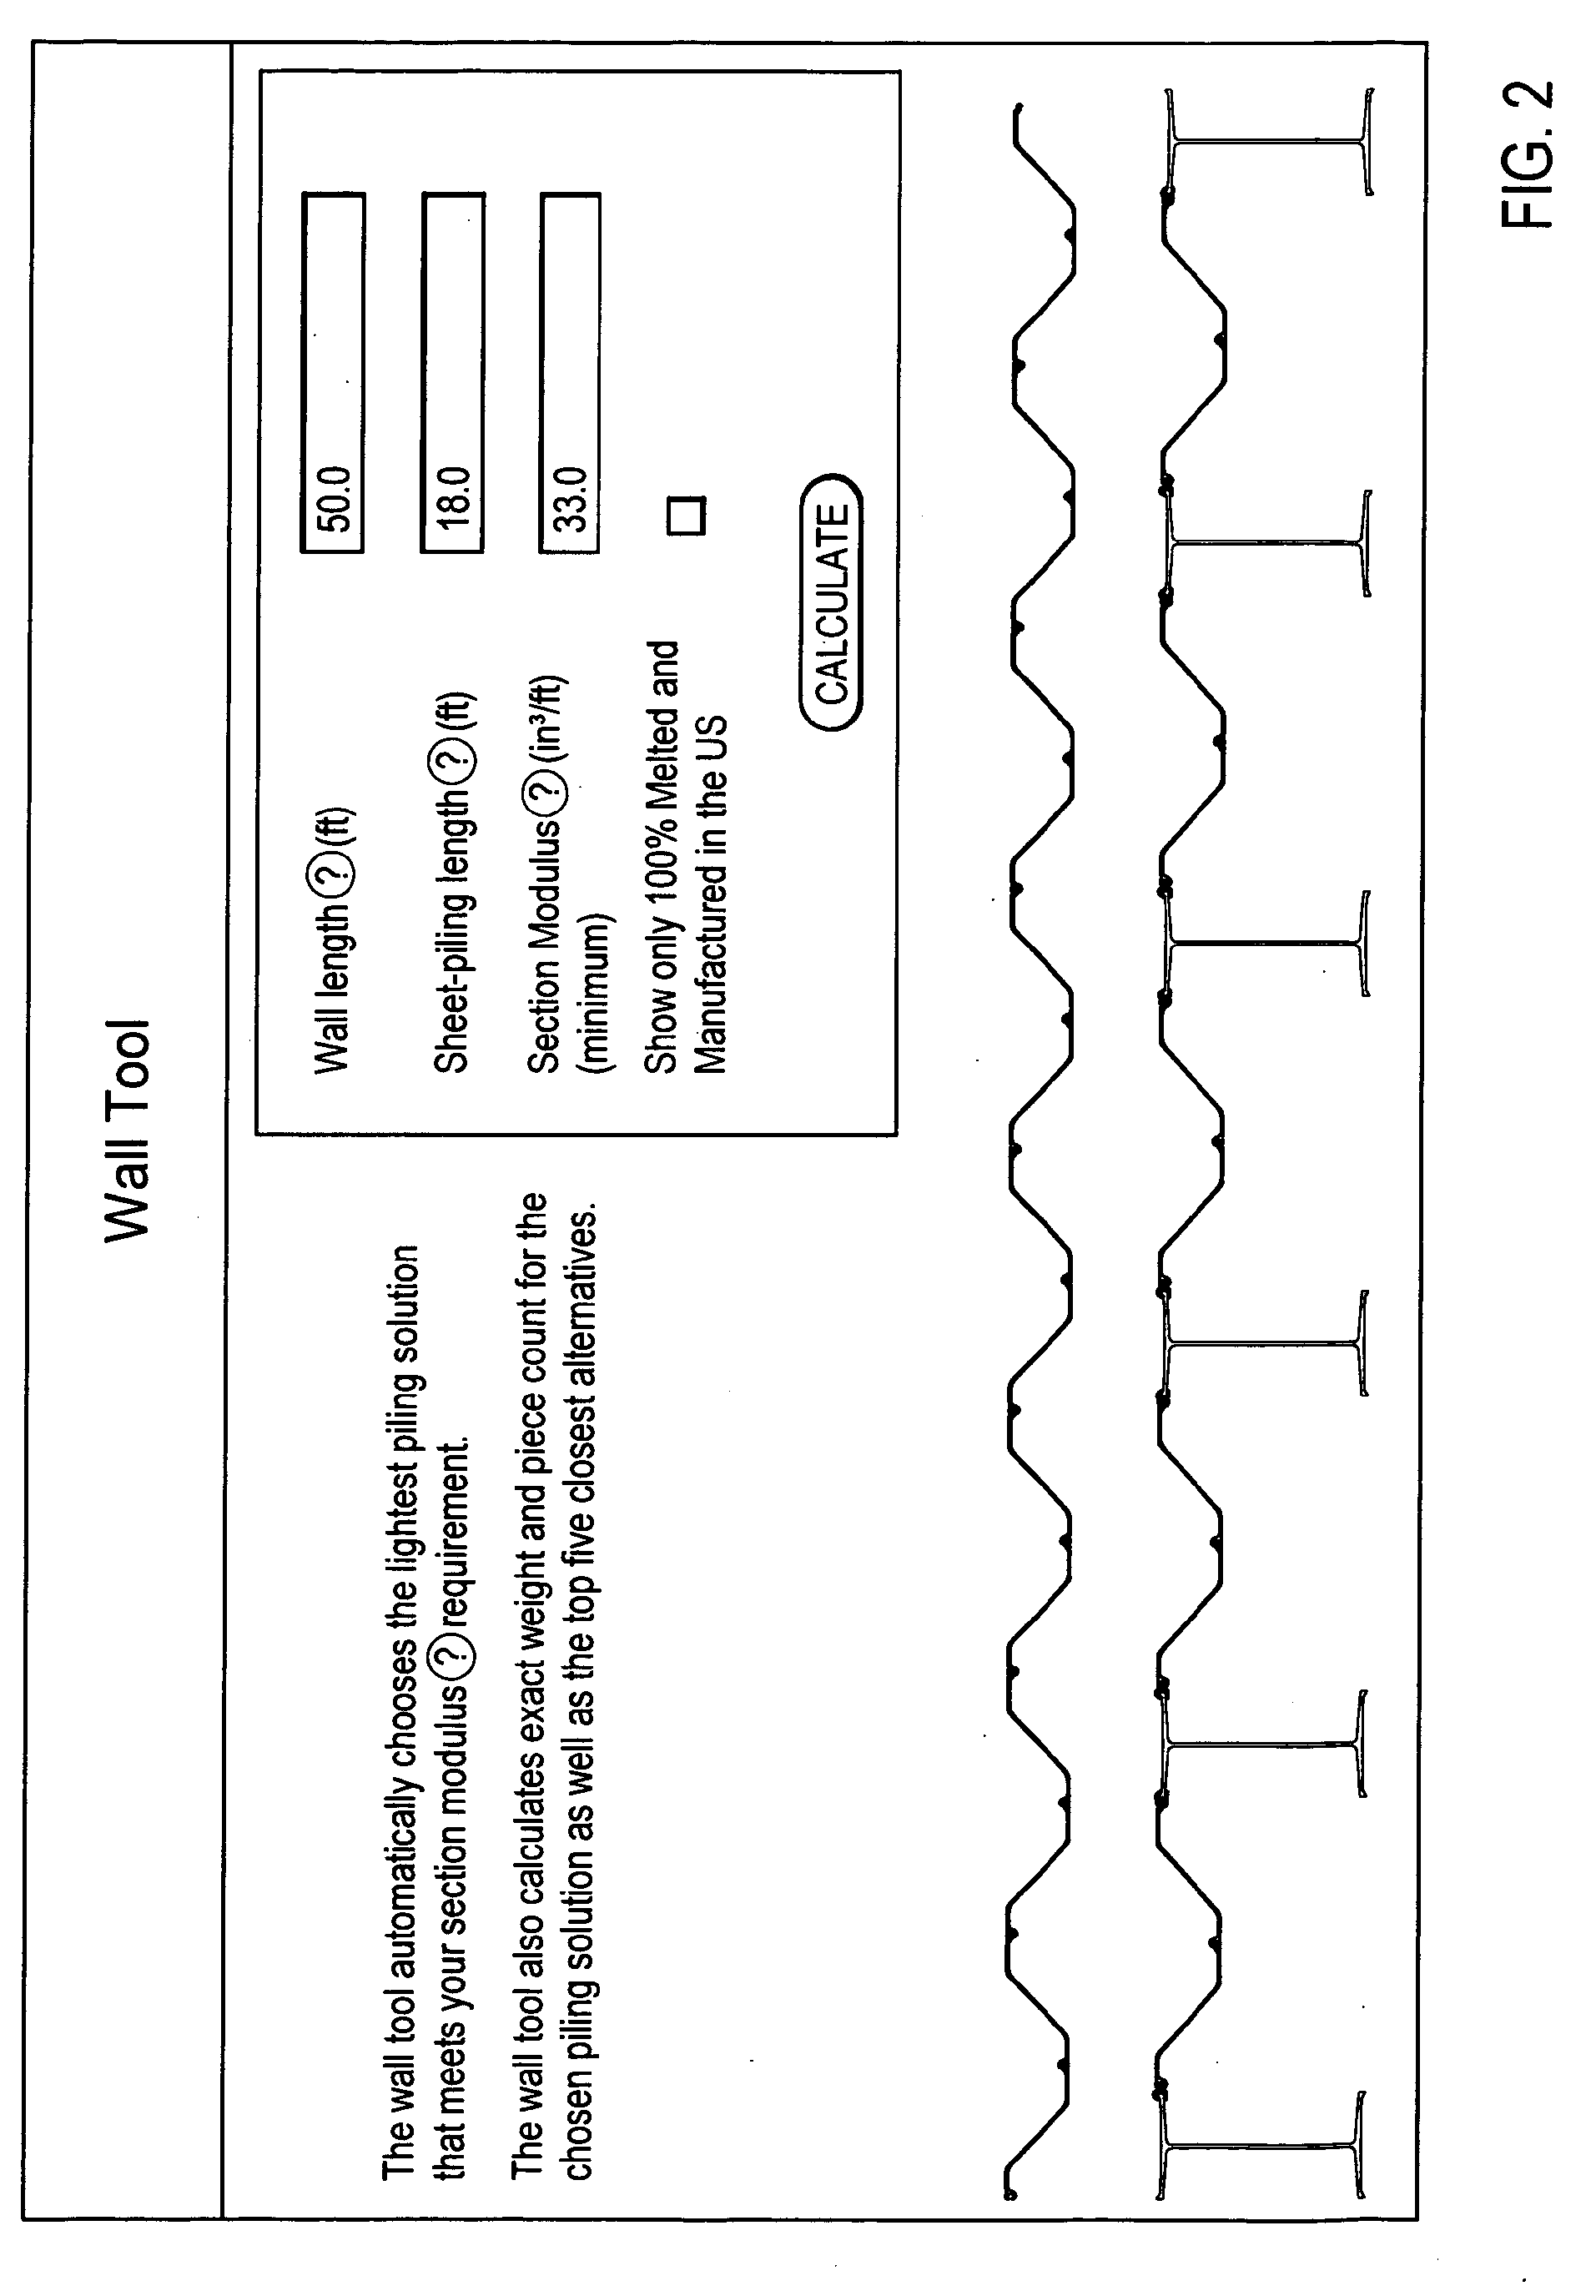 Patent Ep1830287a2 Method For Planning Sheet Pile Wall